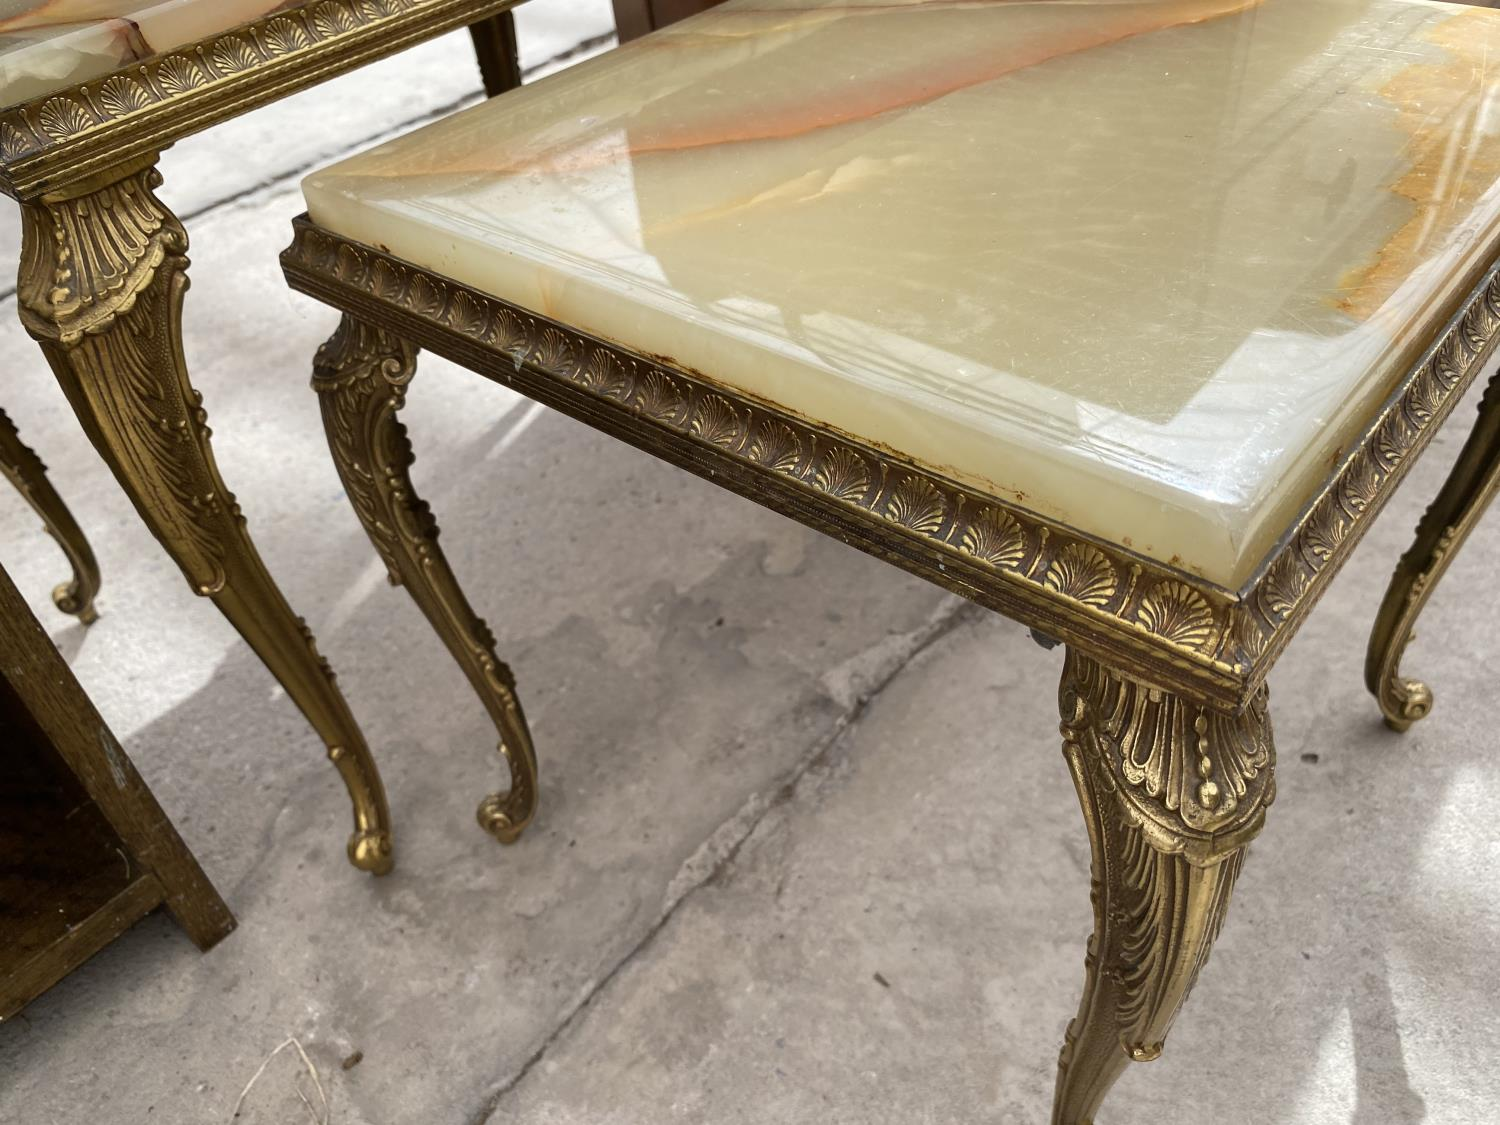 A NEST OF TWO ONYX TABLES - Image 3 of 3